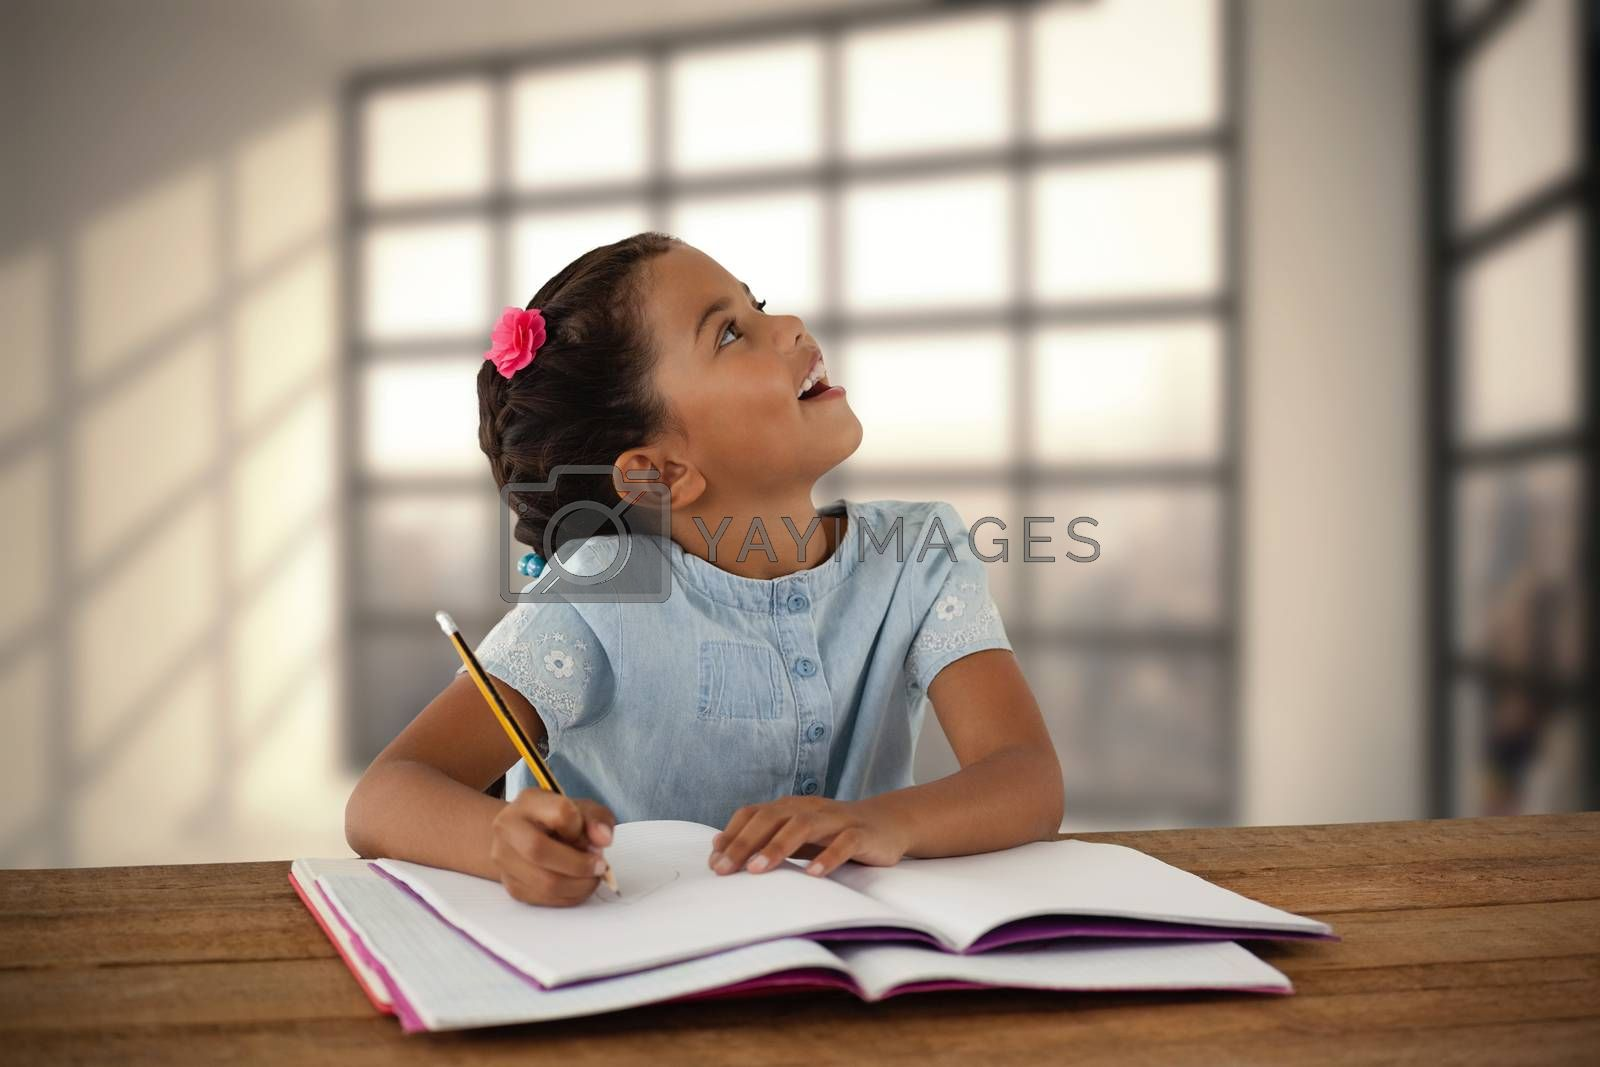 Composite image of girl looking up while writing in book by Wavebreakmedia